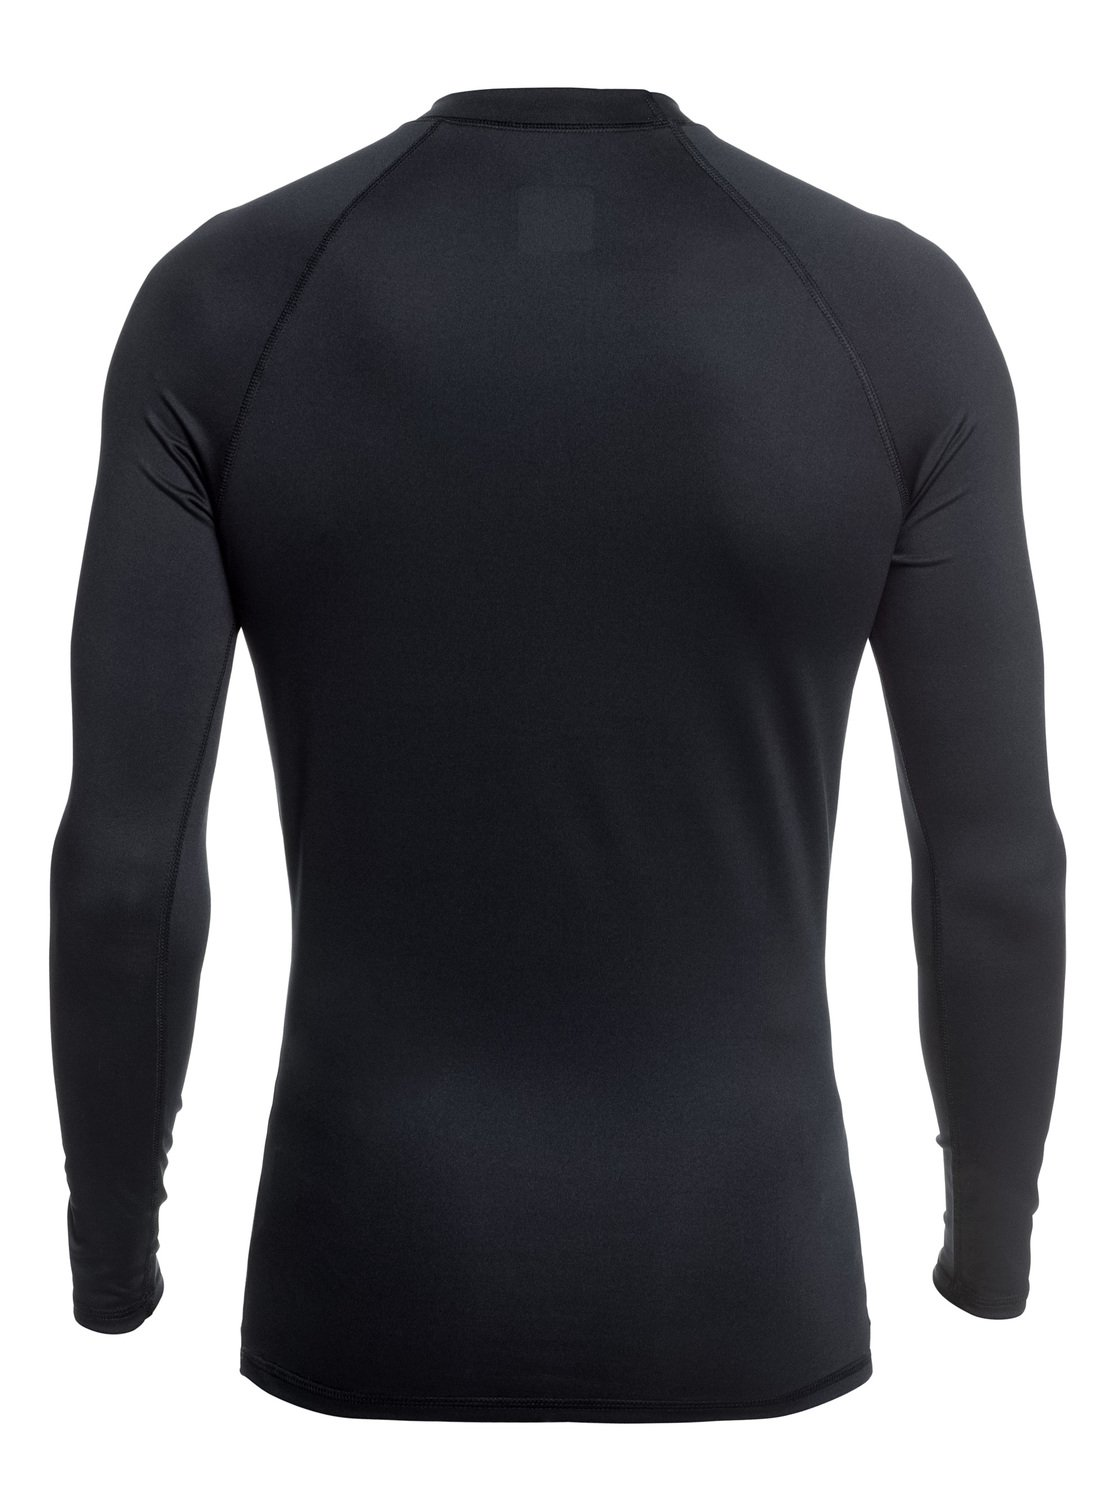 Quiksilver Mens Kona Way Long Sleeve UPF 50 Sun Protection